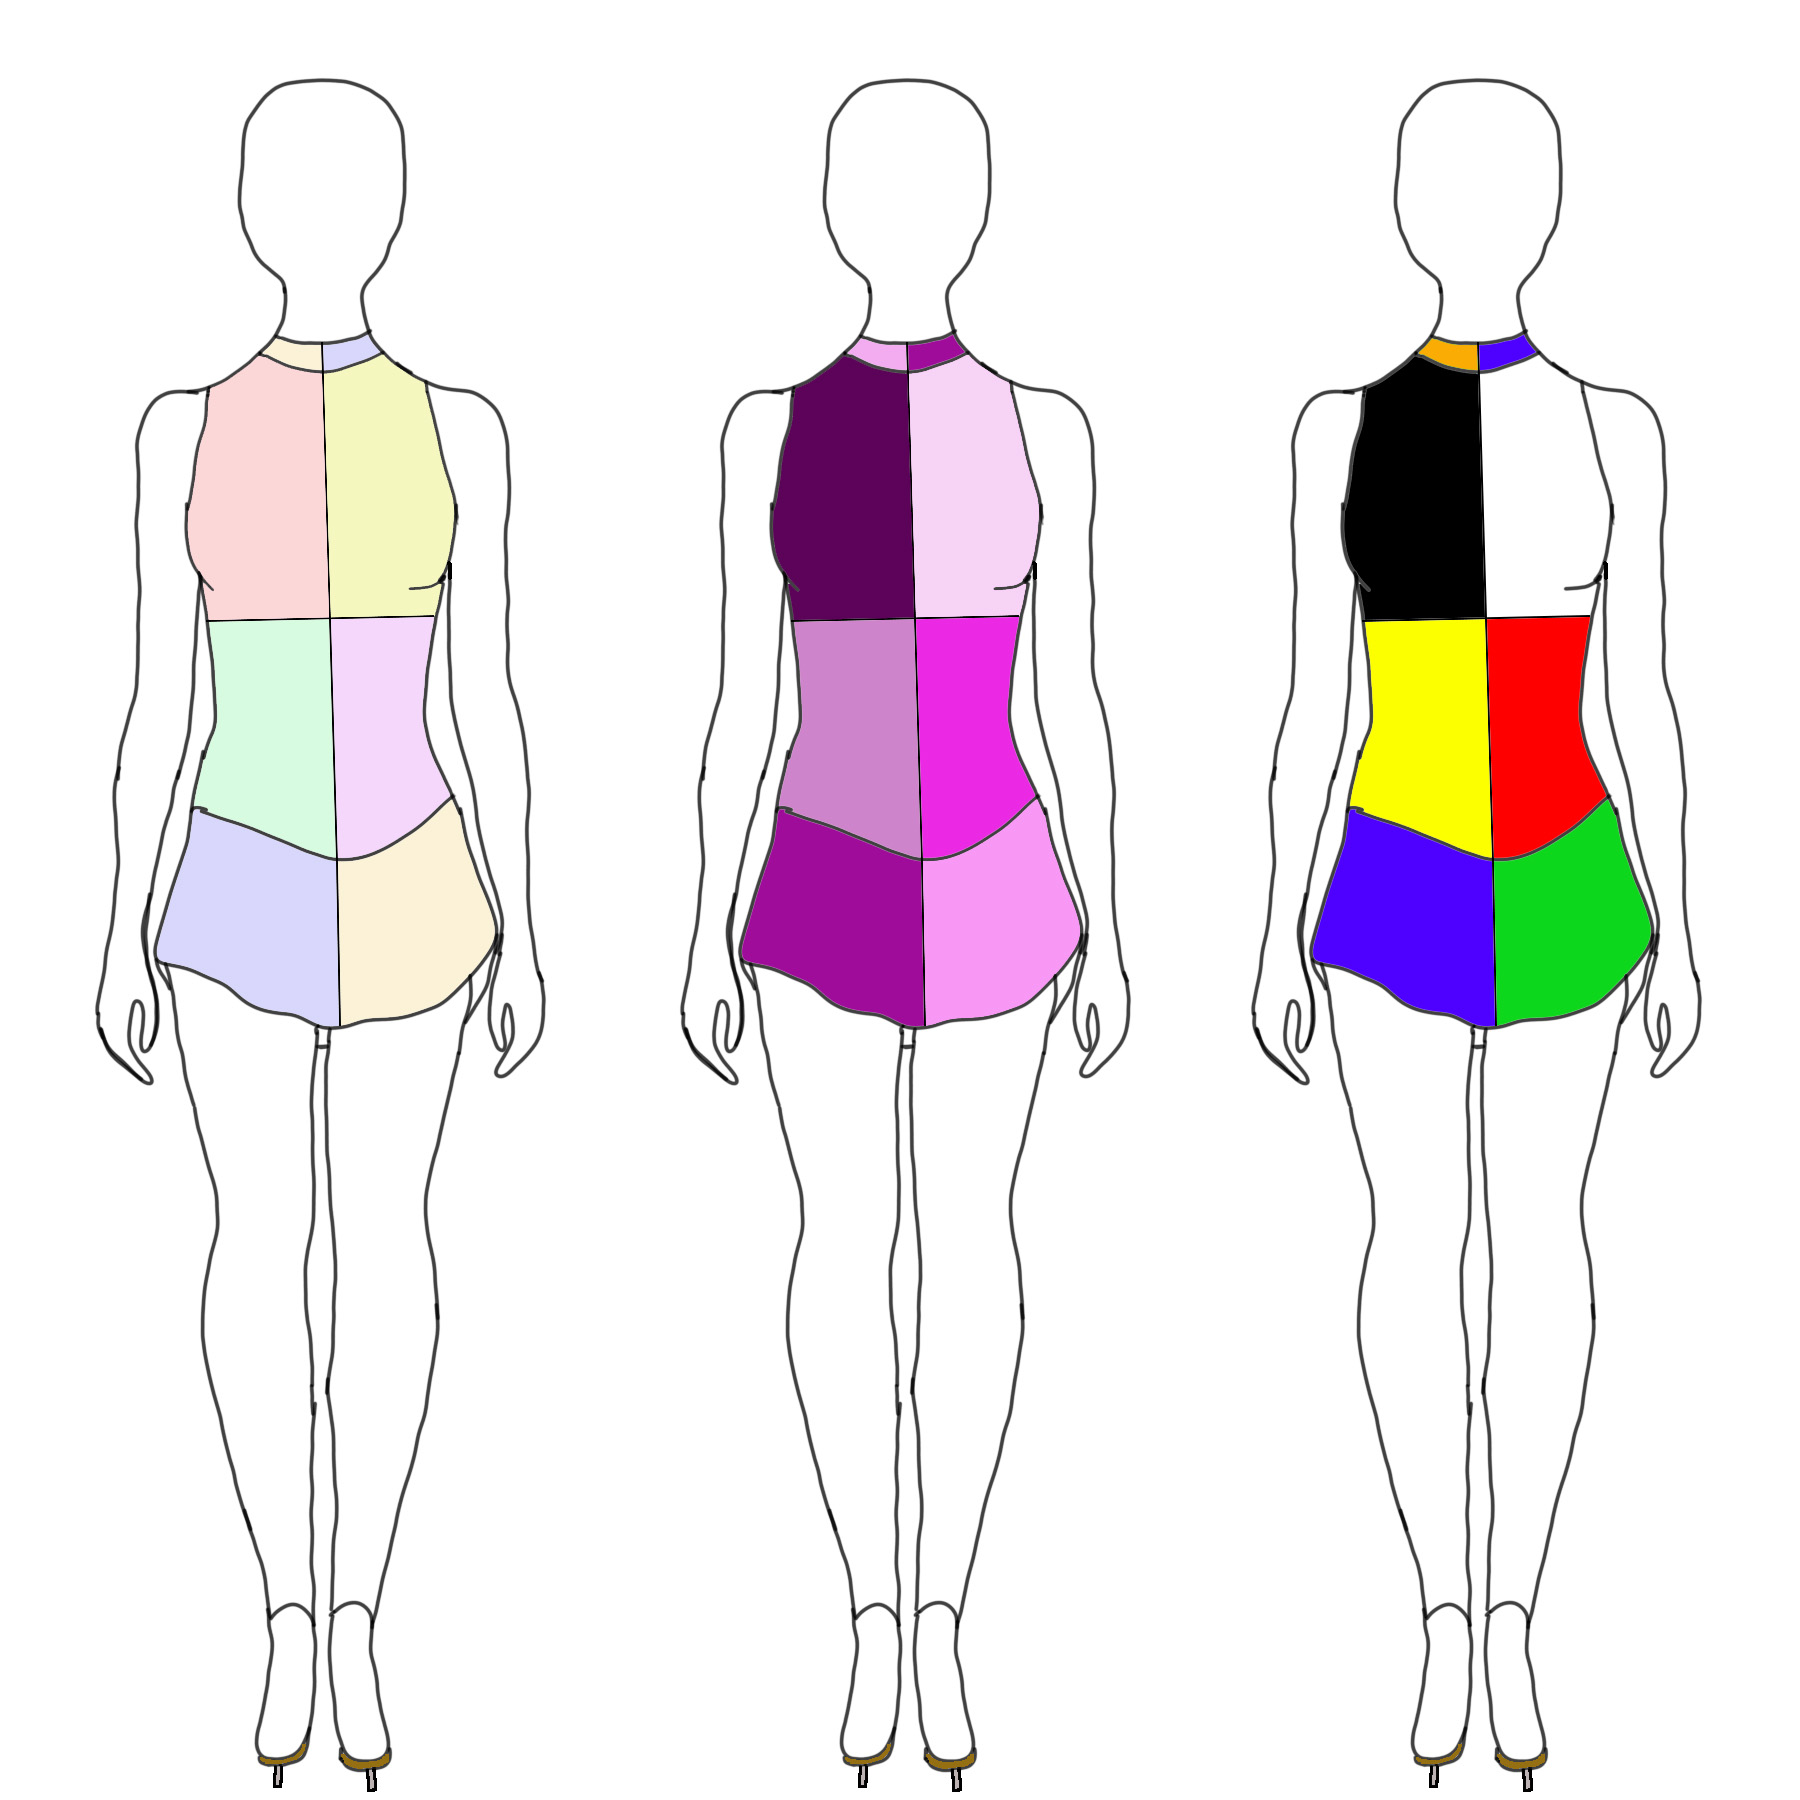 Sketches of a blocky figure skating dress, with 3 different colour schemes.